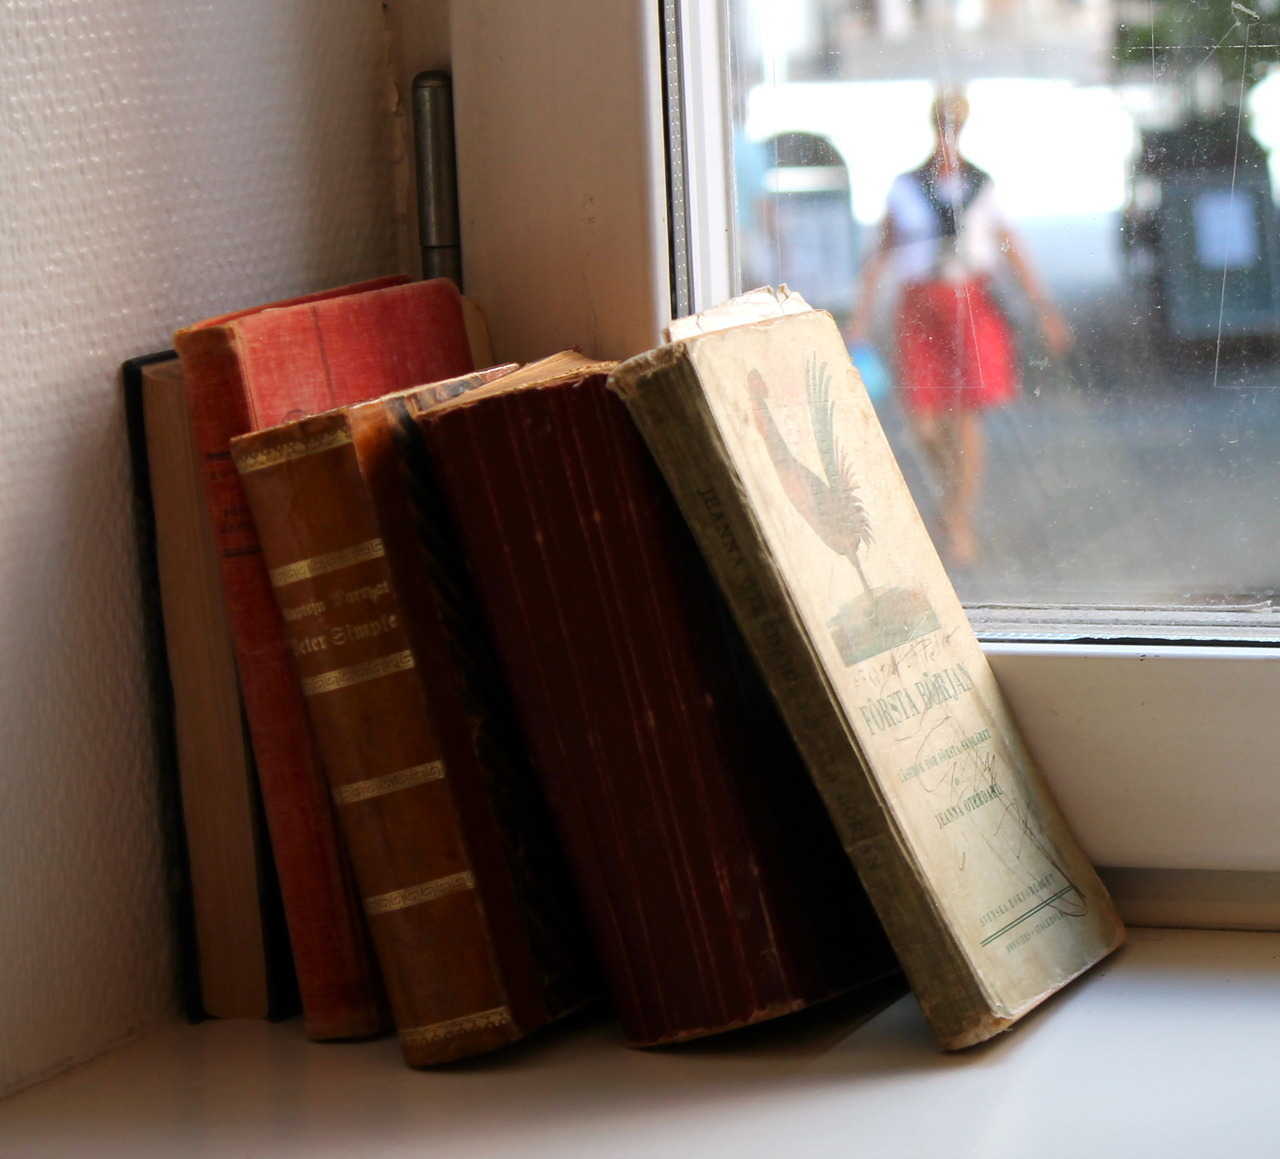 lifesmilesback:  Books